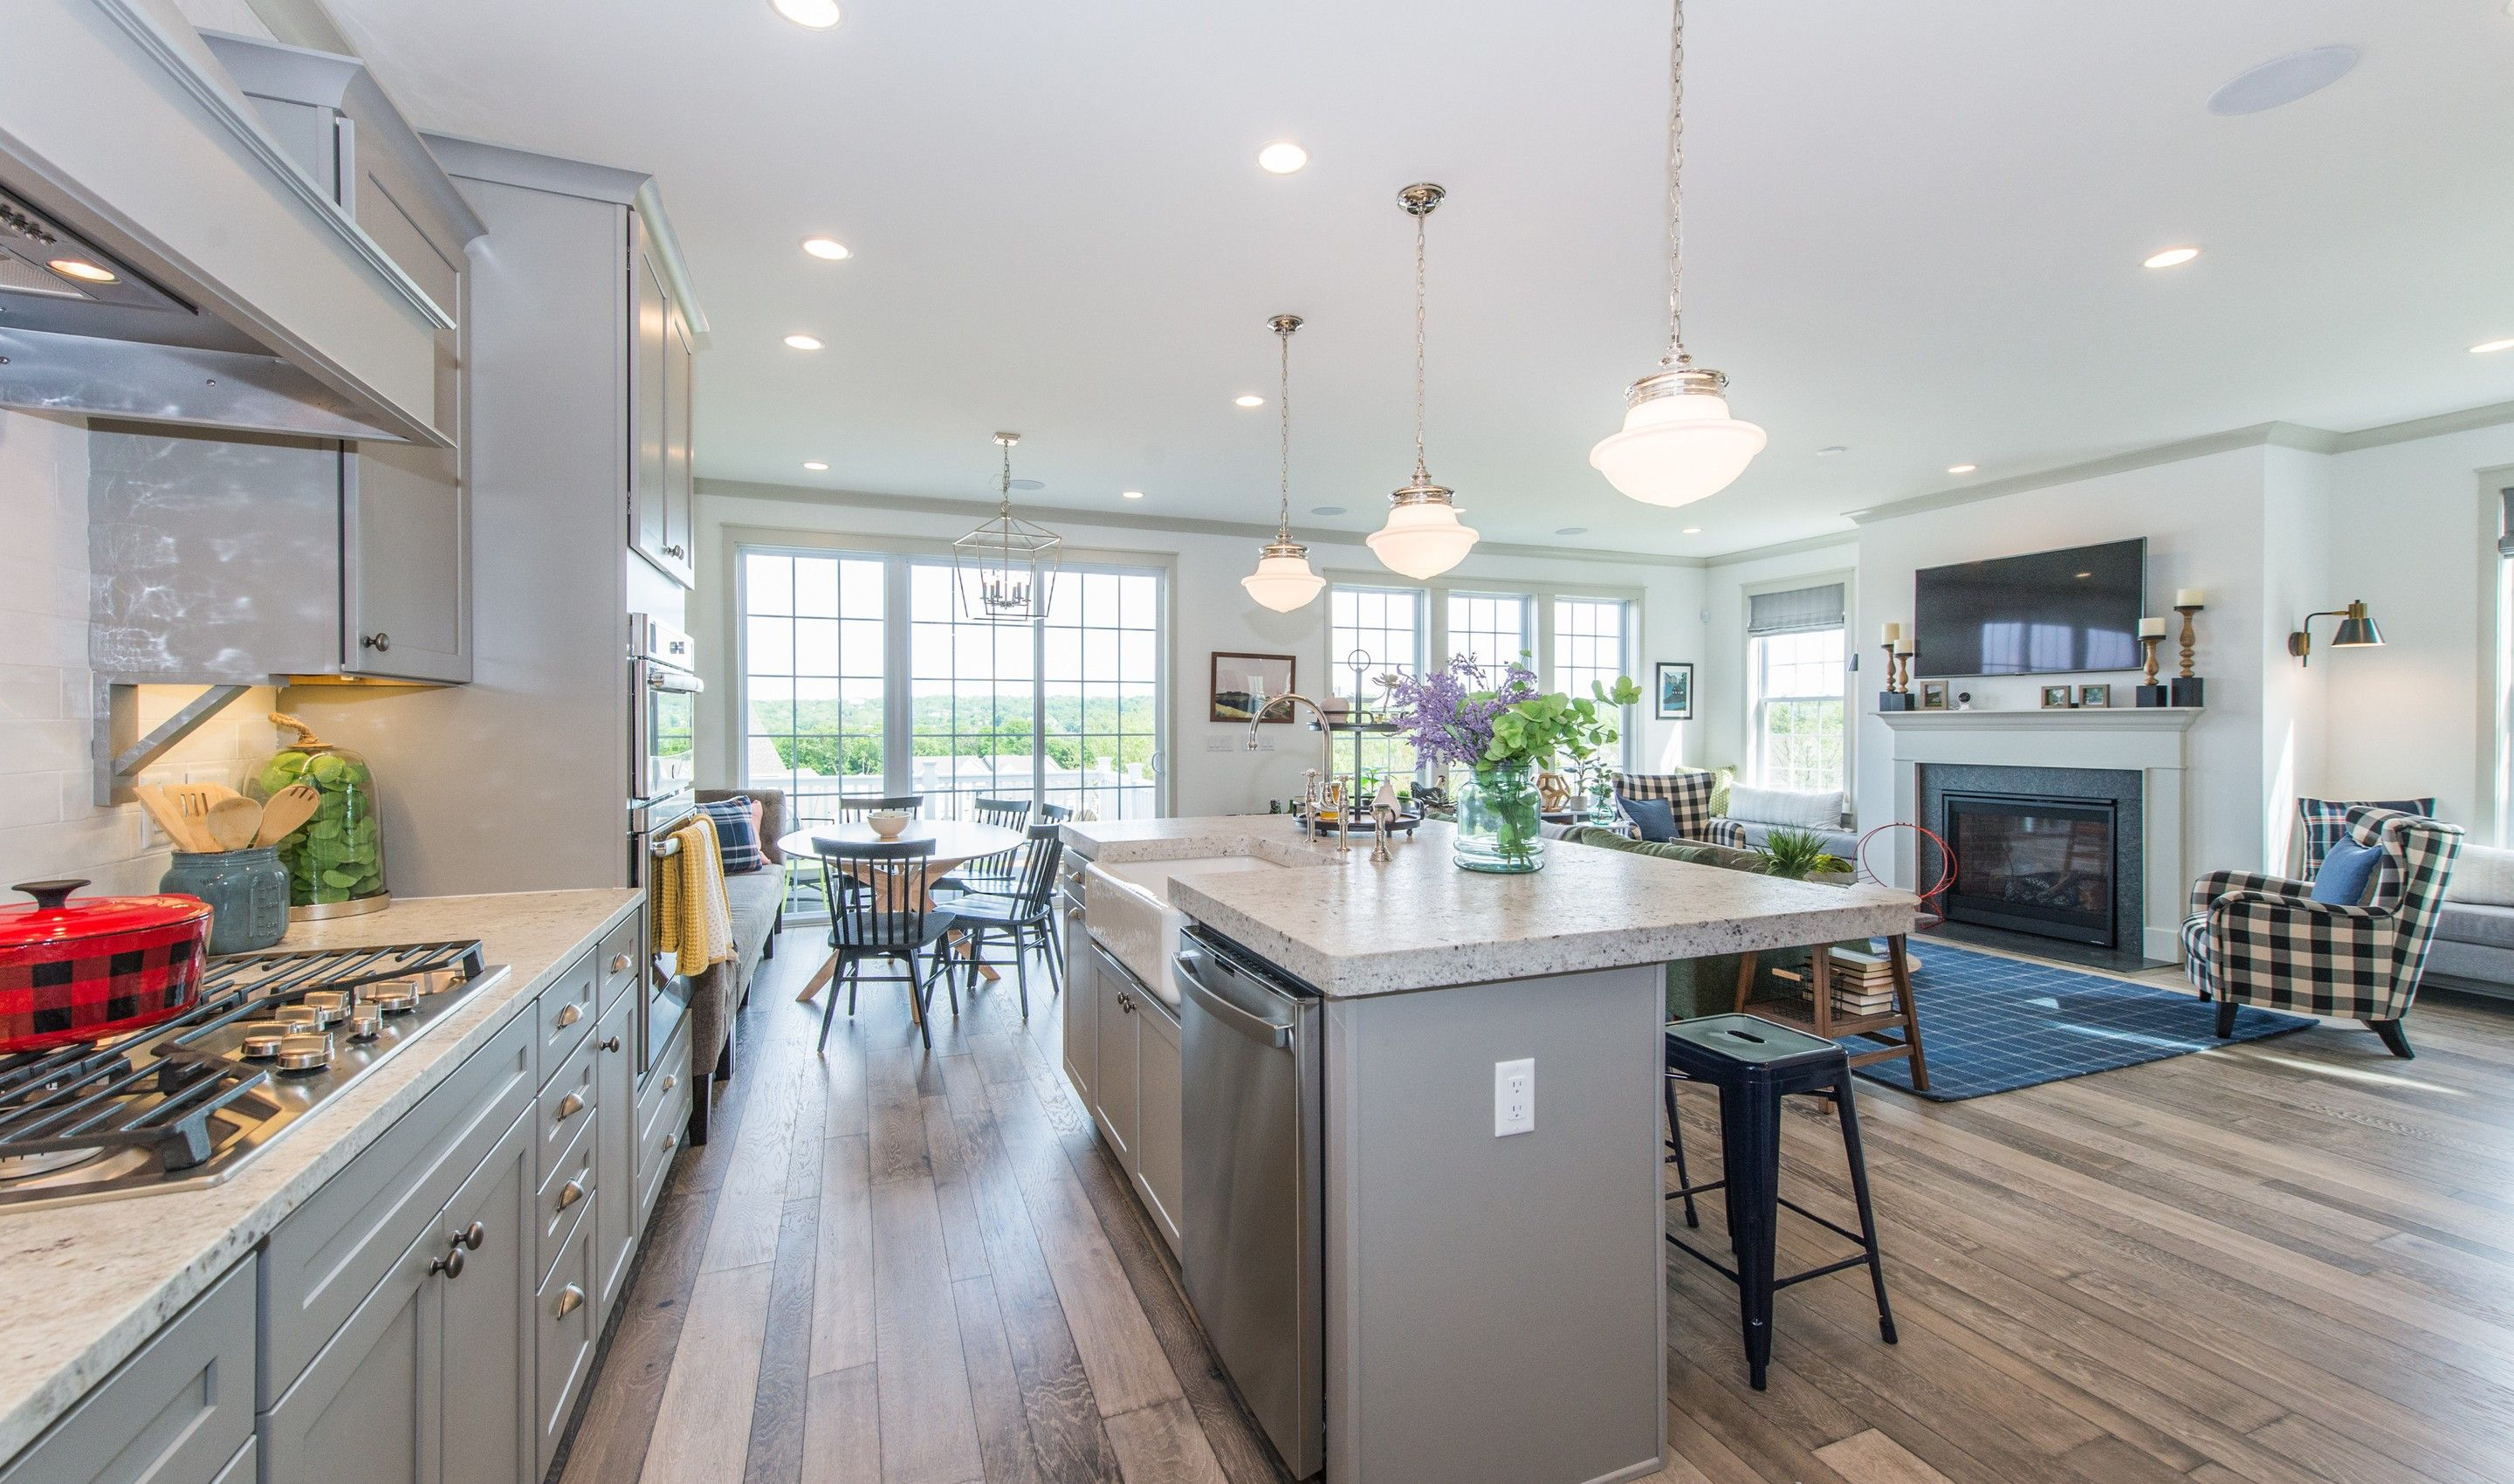 Kitchen featured in the Claremont By K. Hovnanian® Homes in Essex County, NJ